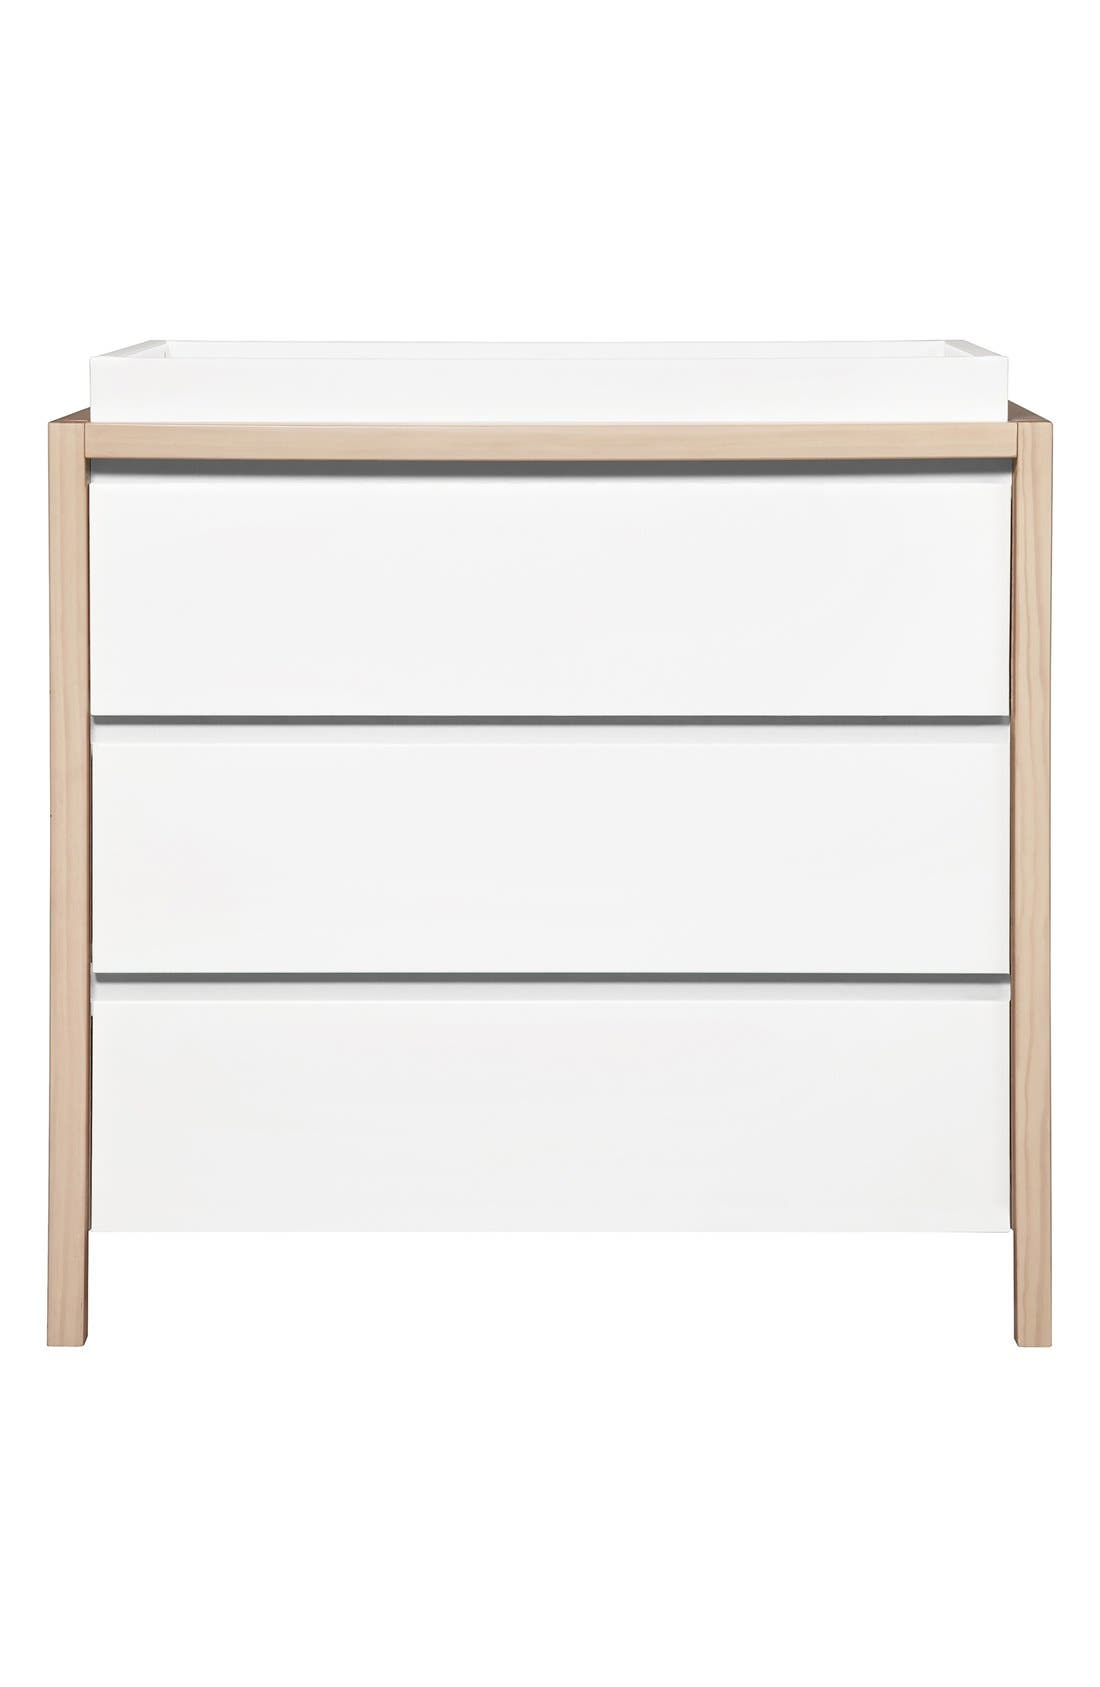 Main Image - babyletto 'Bingo' Three Drawer Changer Dresser